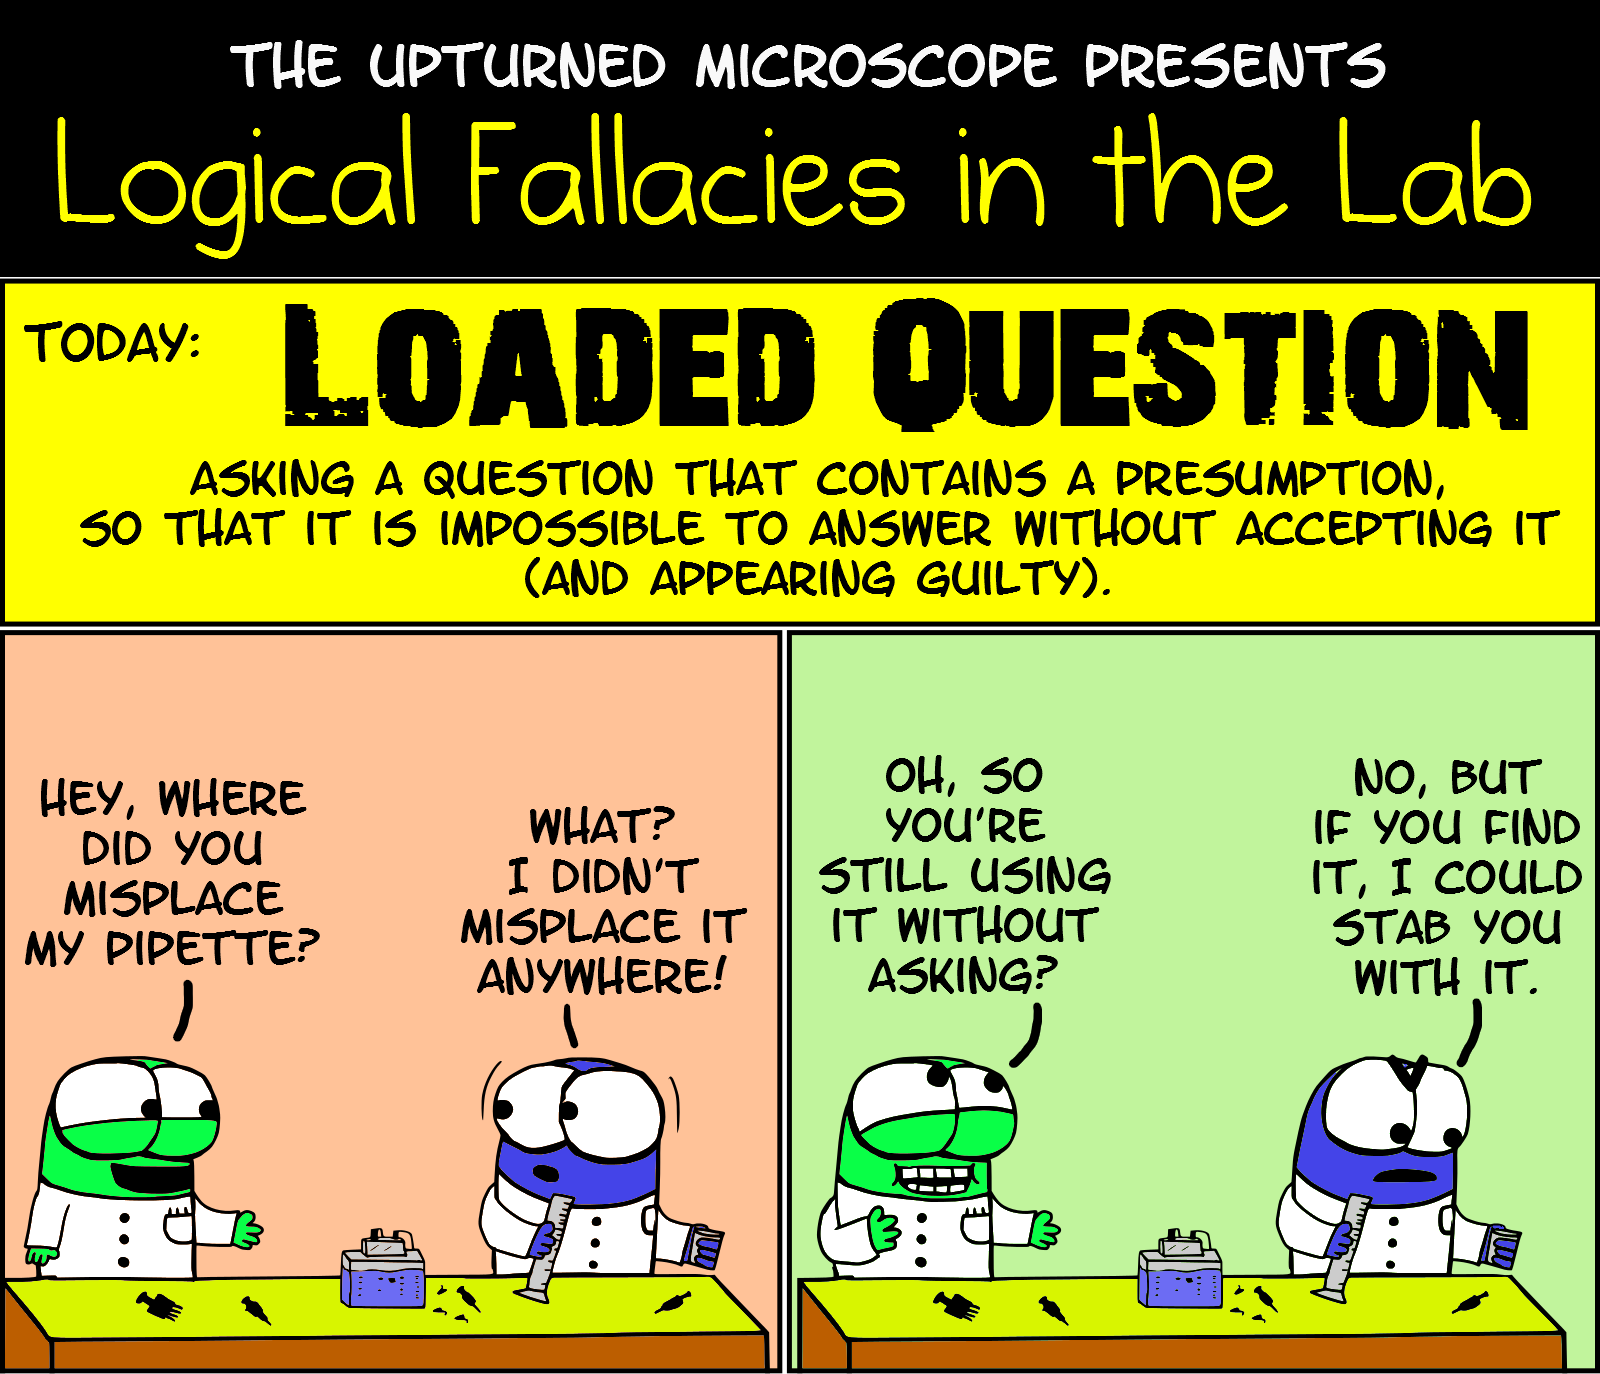 logical fallacies loaded question the upturned microscope lf10 loaded question